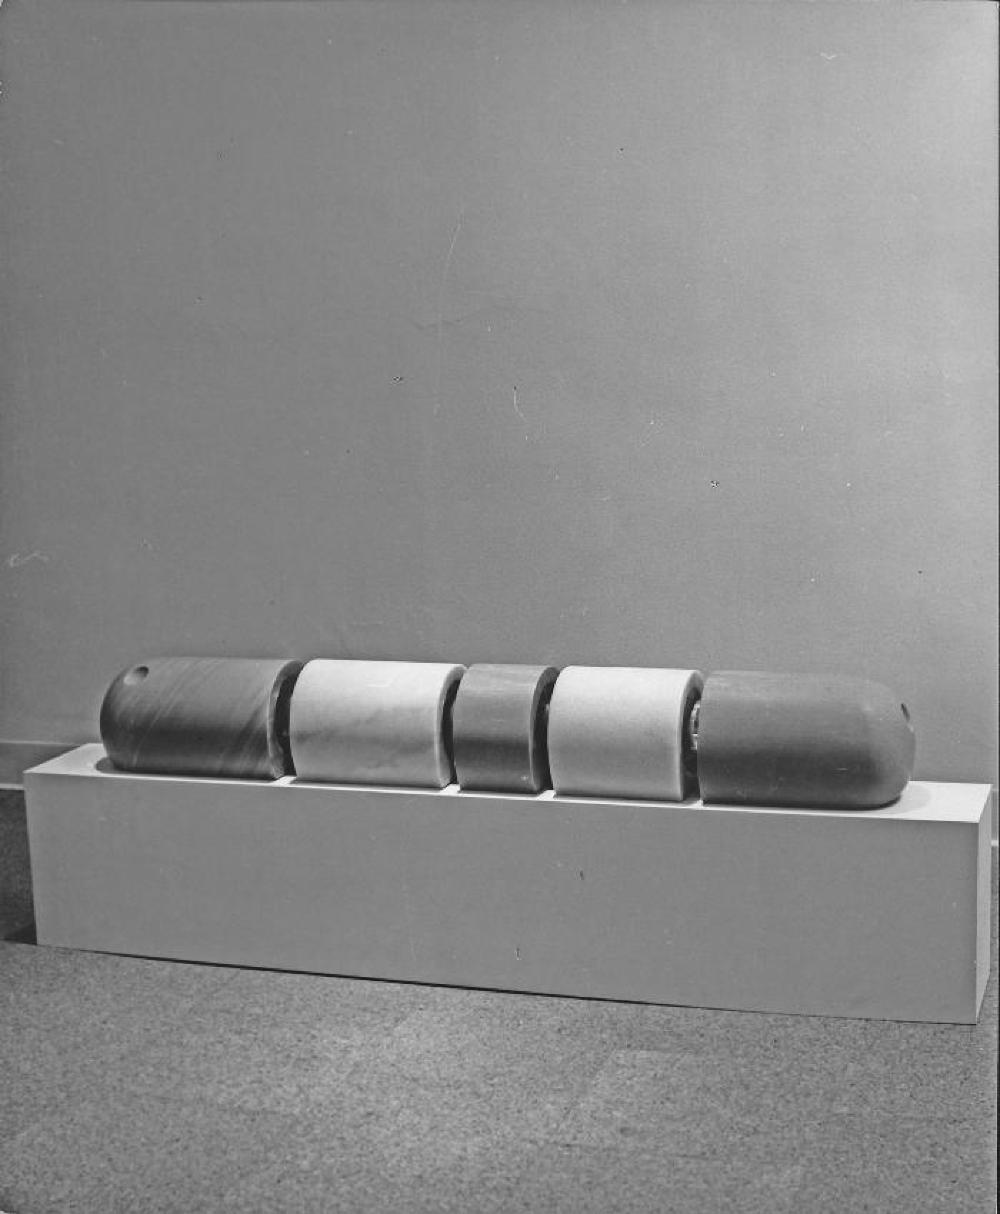 In Dream - Abacus, image 2